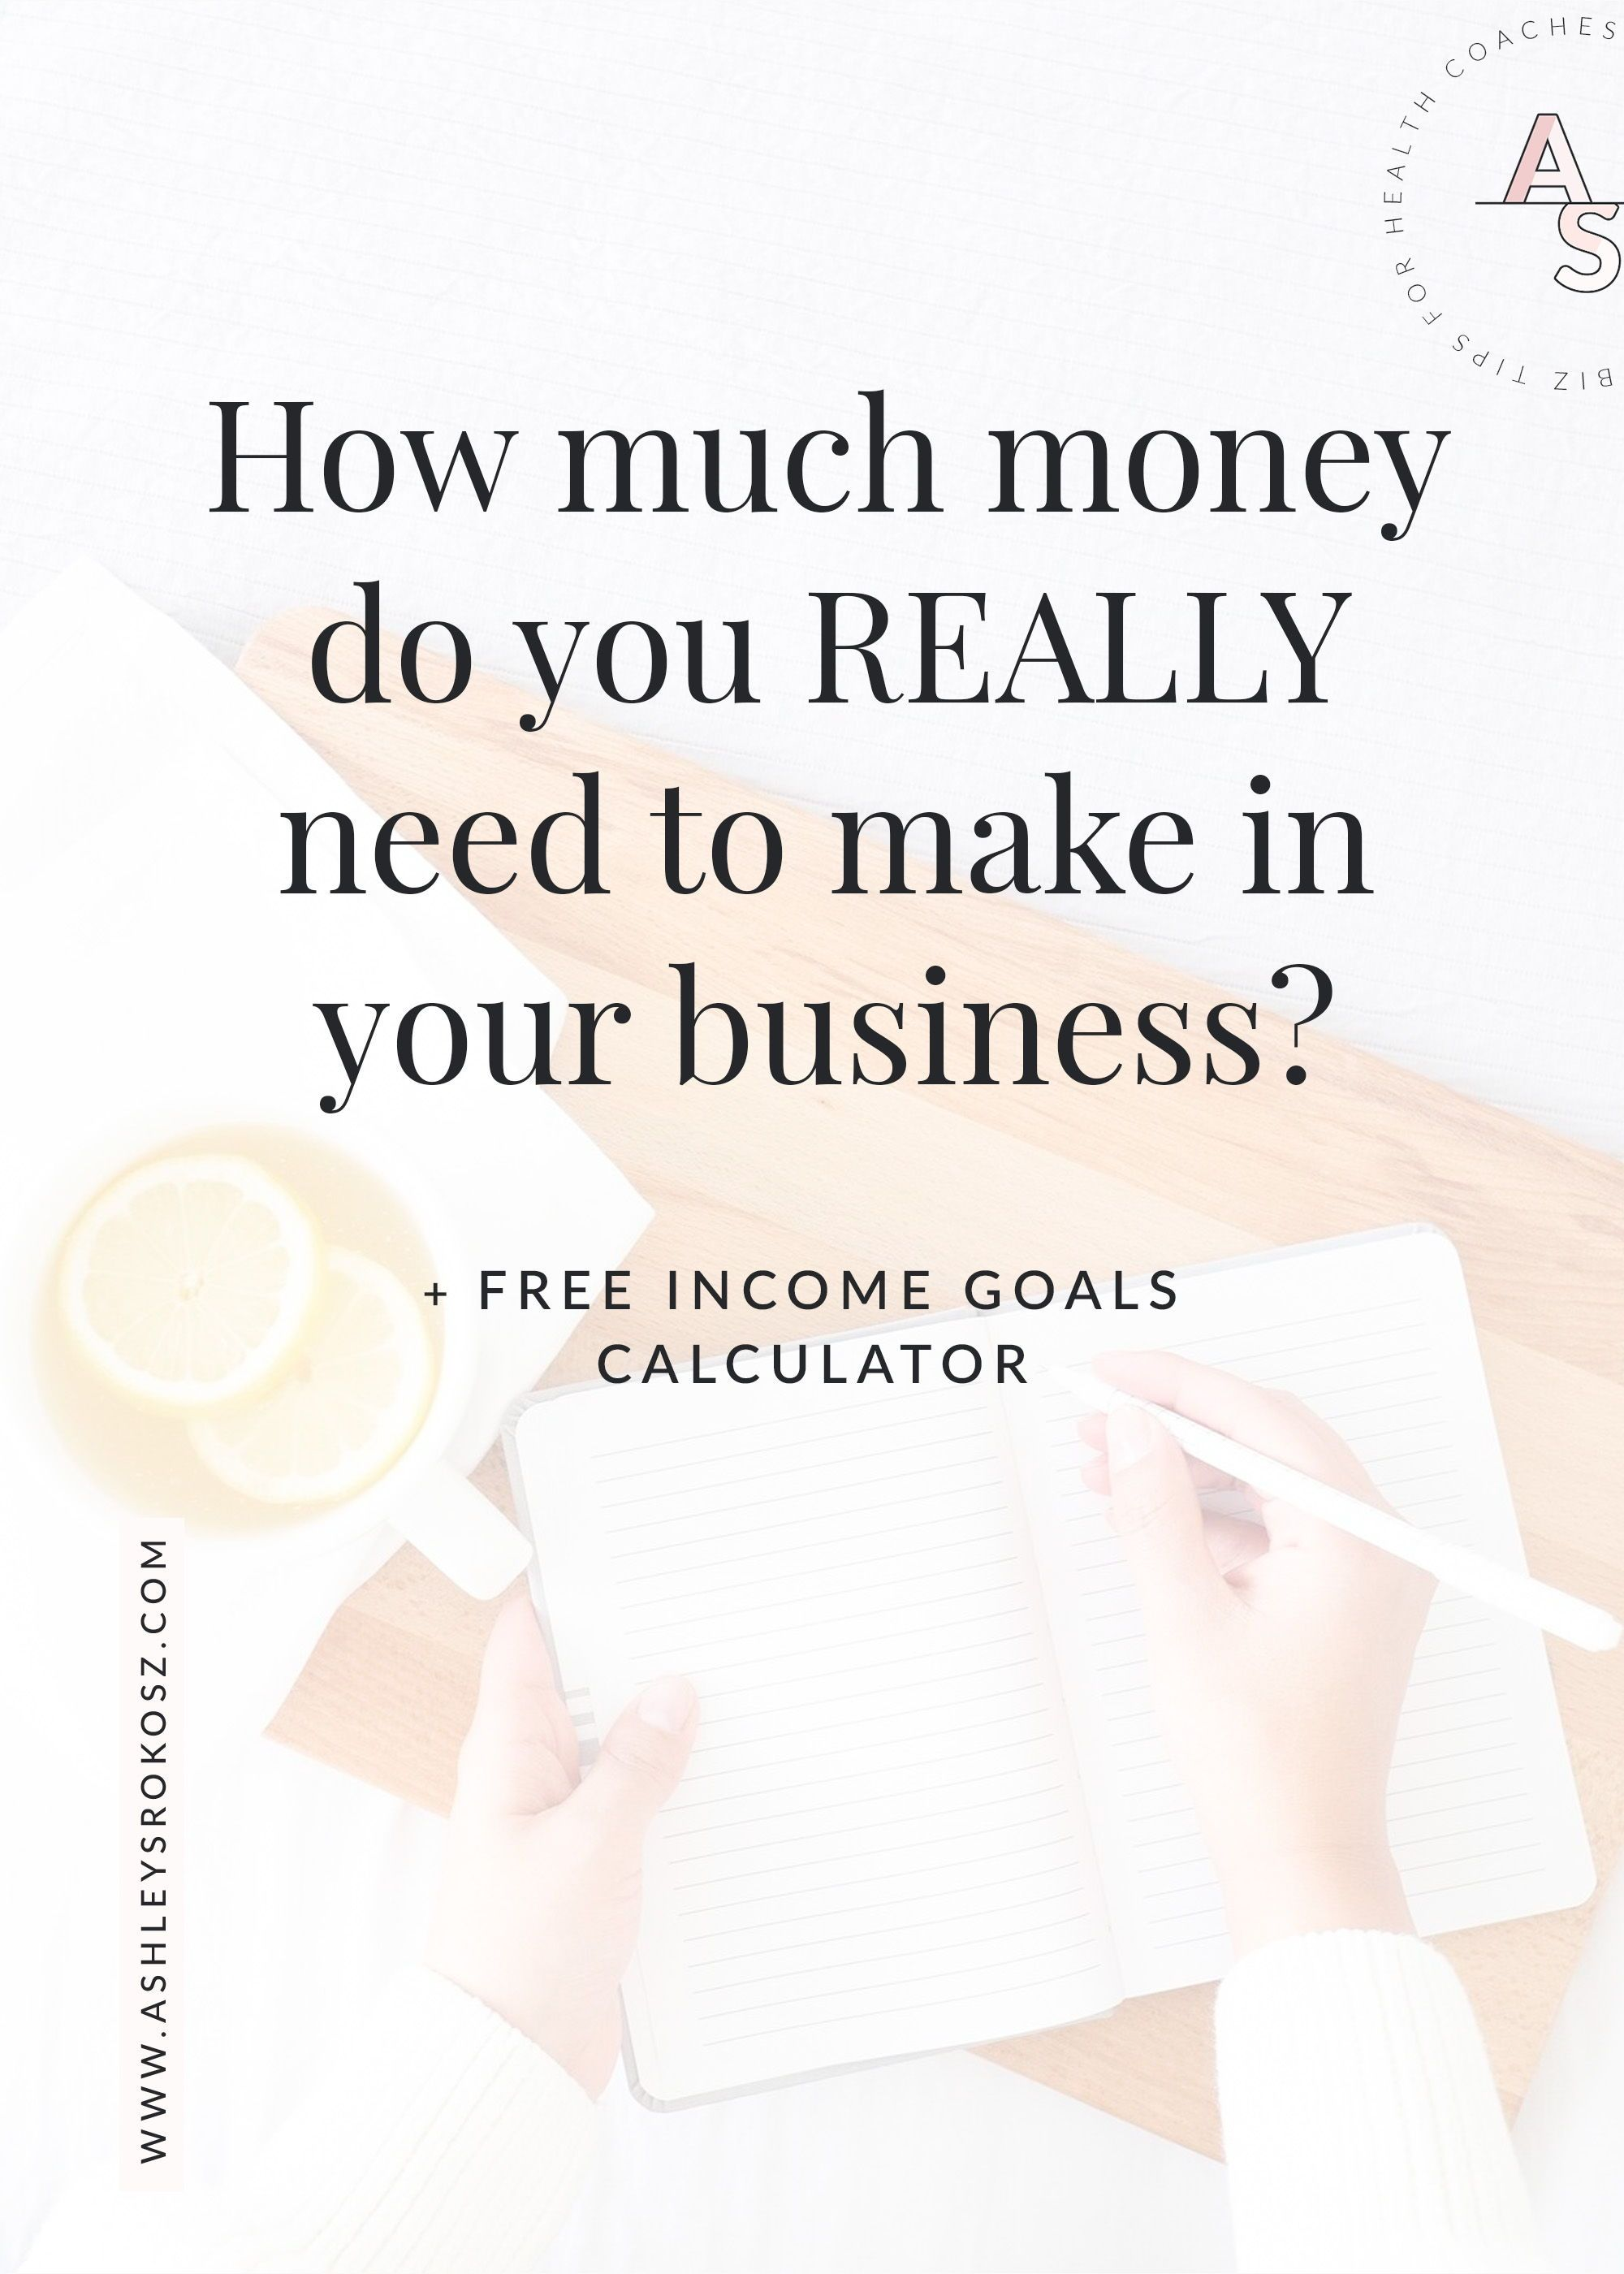 How much money do you REALLY need to make in your business ...